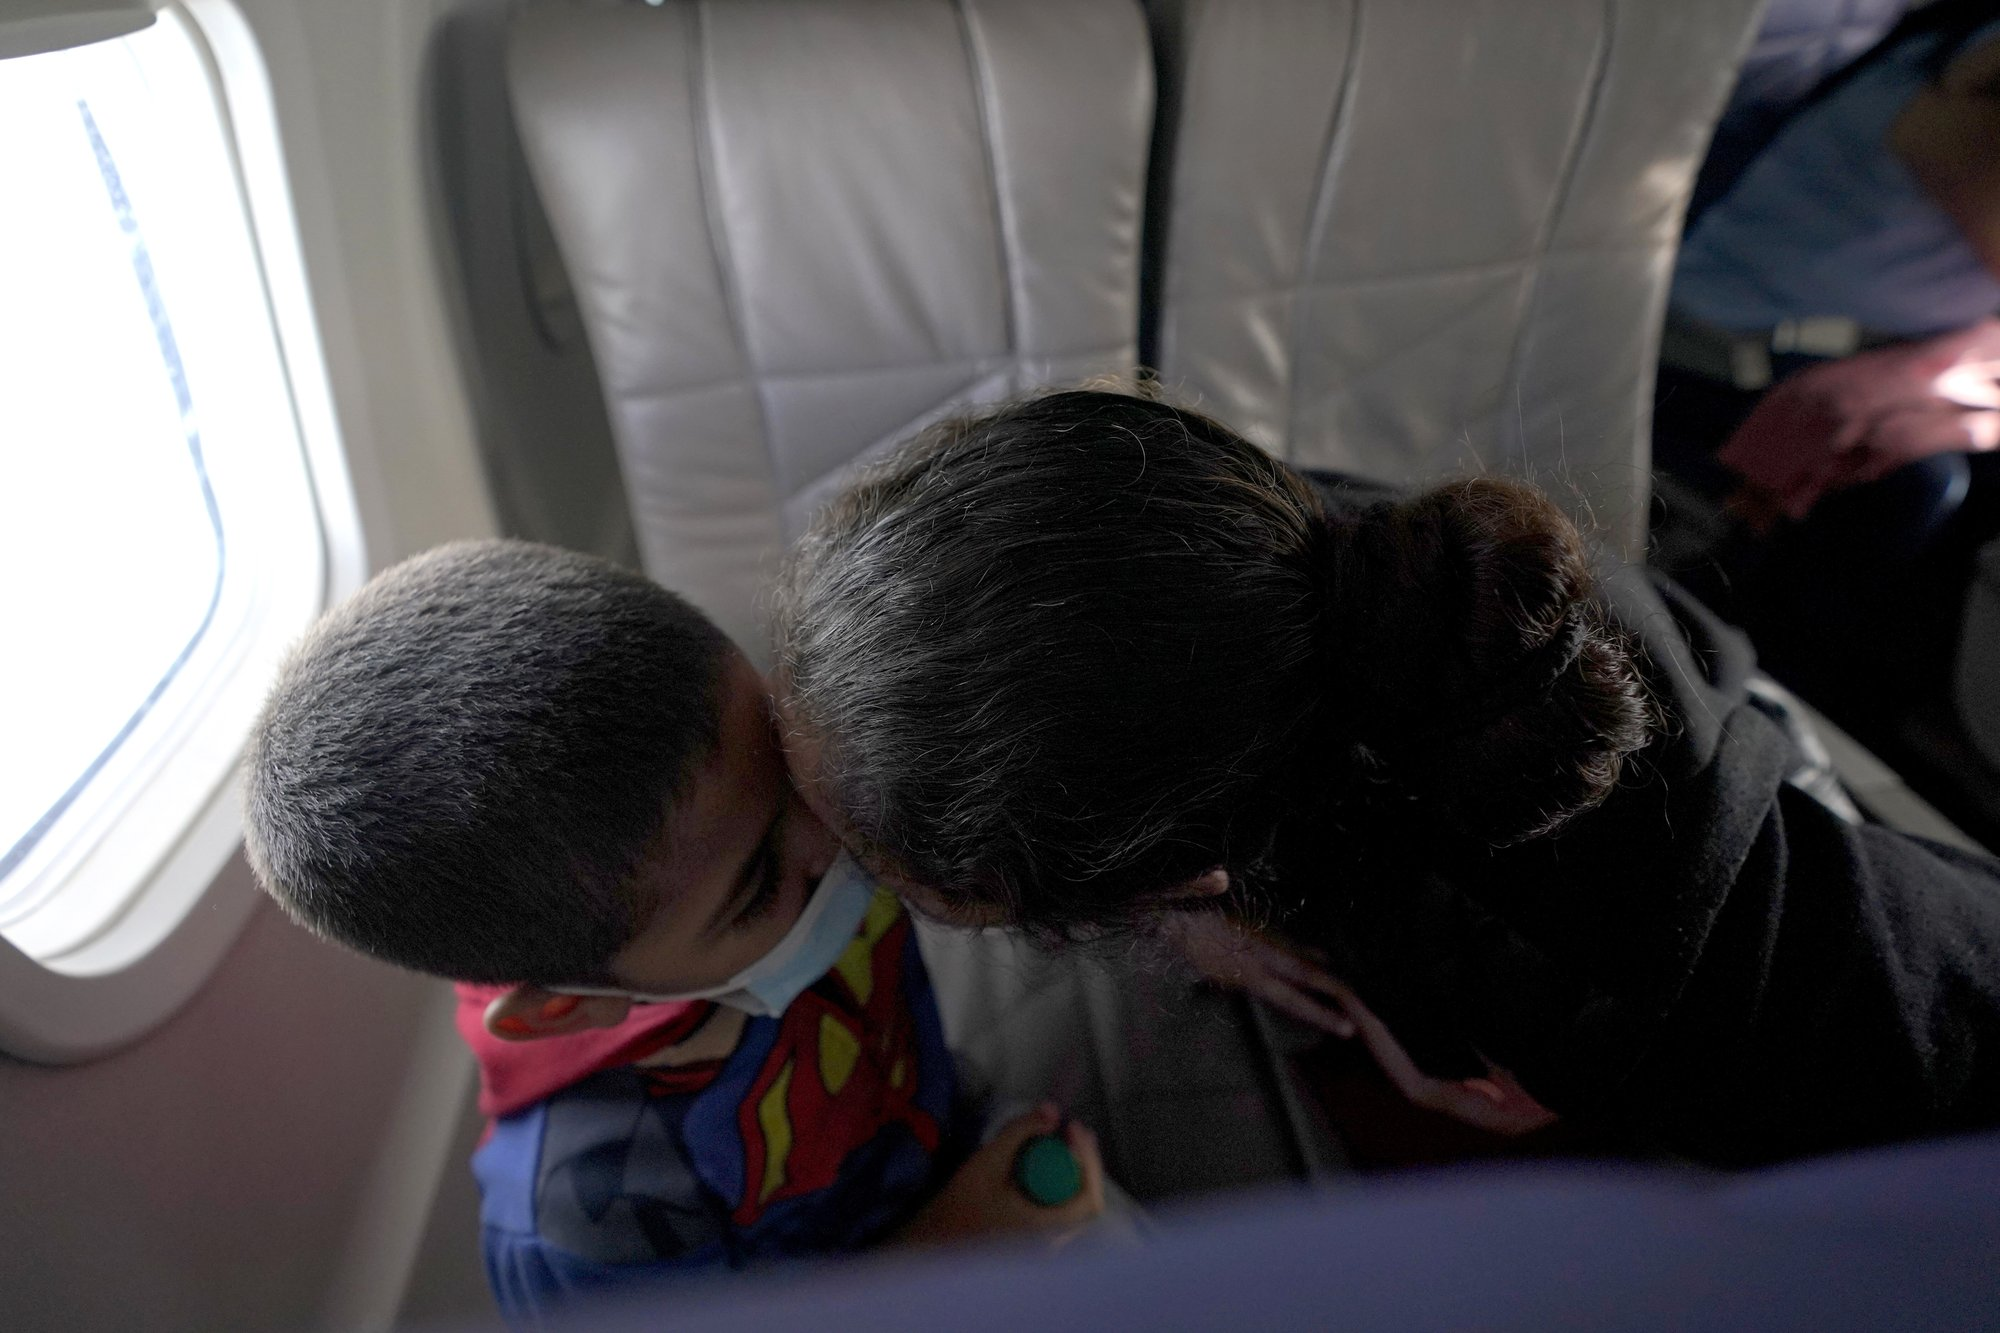 Honduran boy and mother on flight from Harlington to Houston then to Baltimore to be with family after border detention